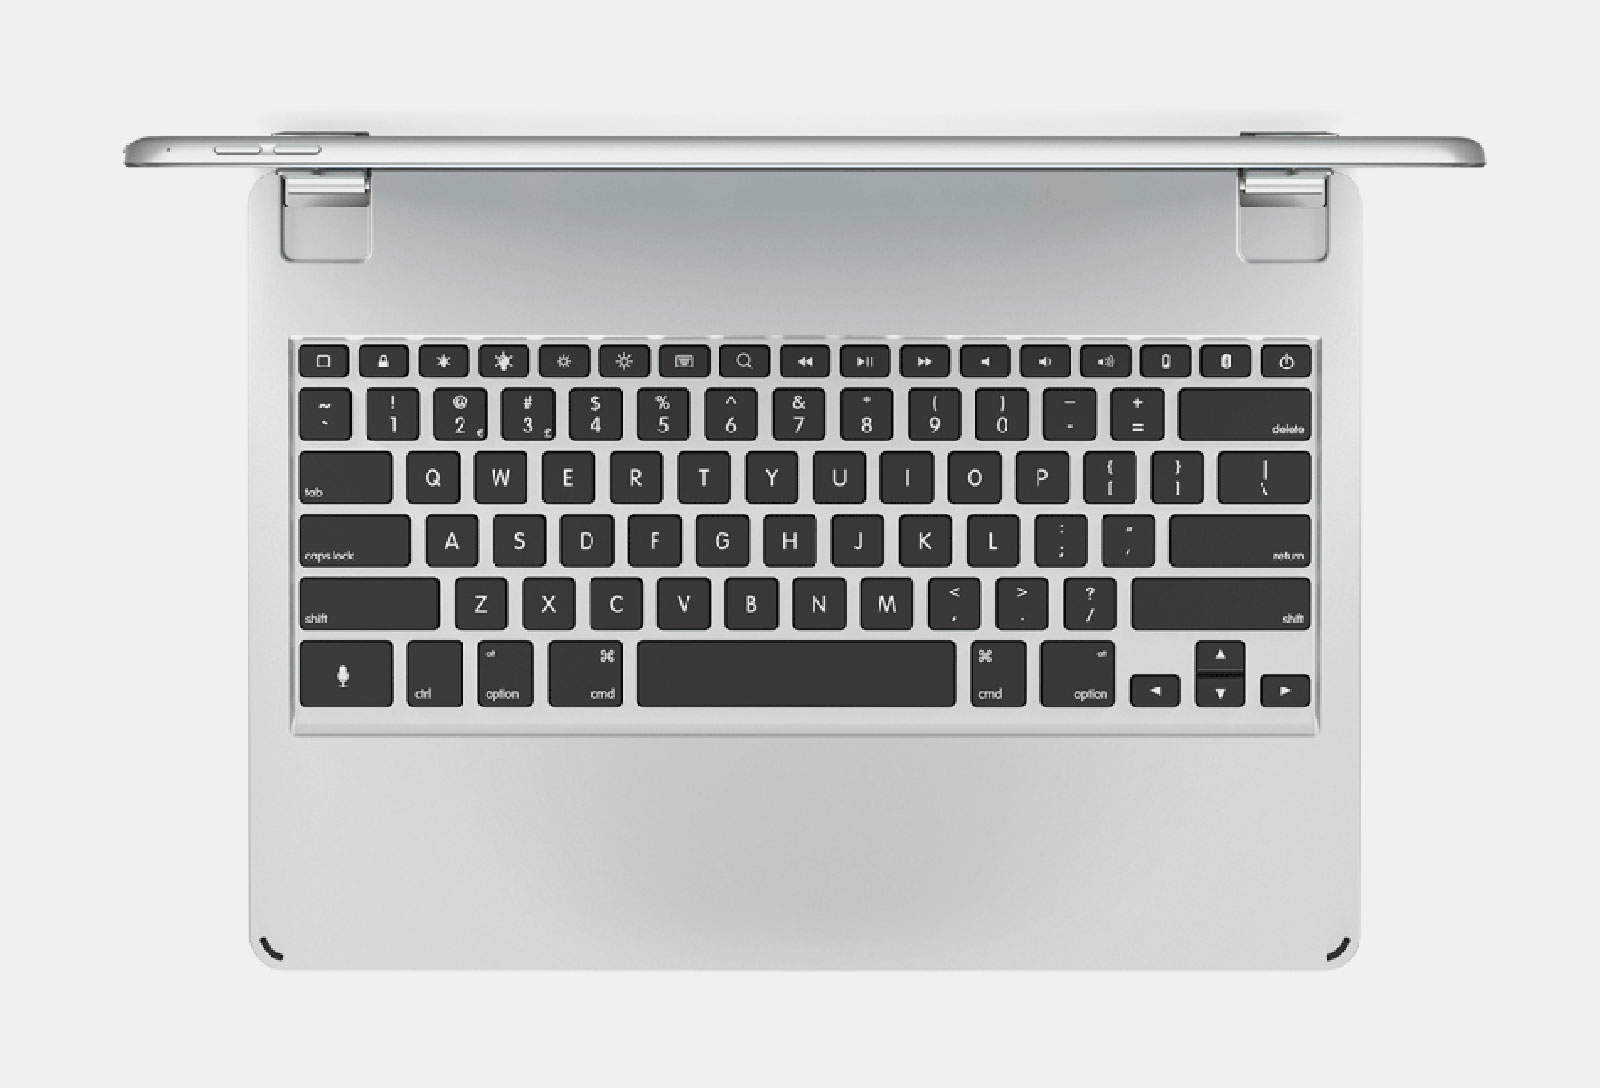 The BrydgePro keyboard for the iPad Pro.